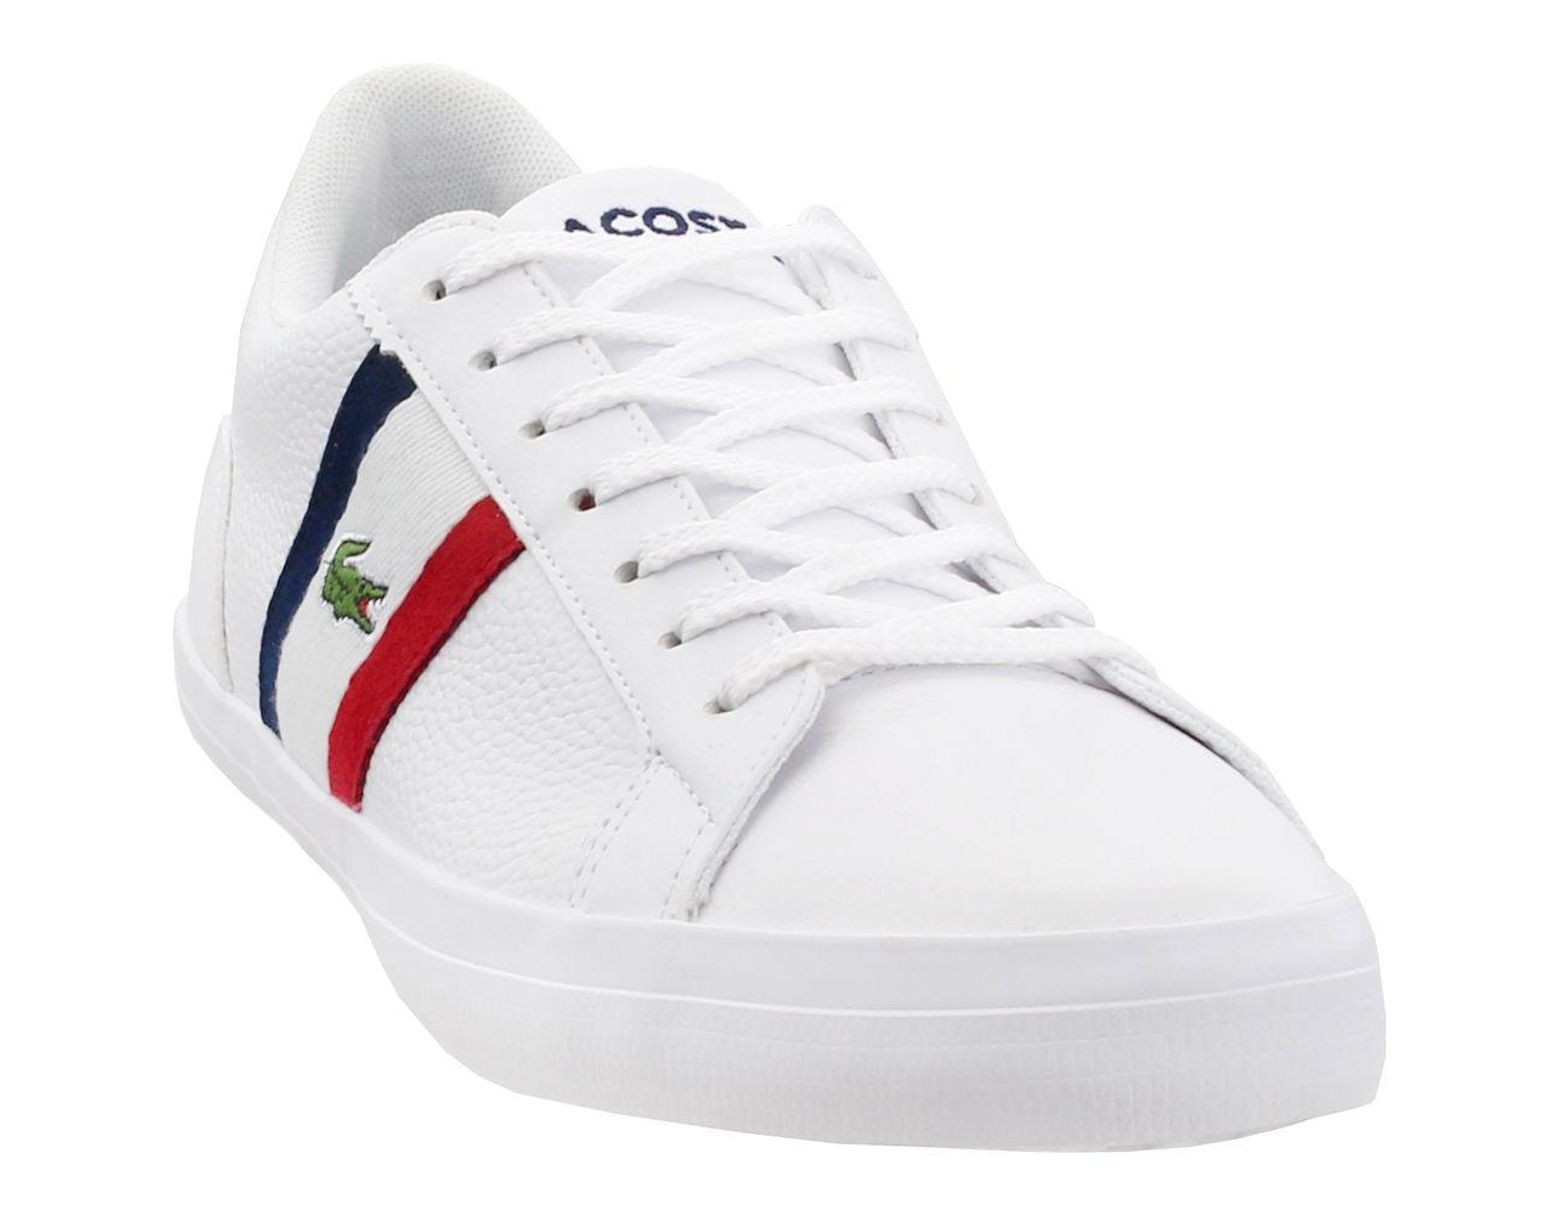 5688fe53b Lyst - Lacoste Lerond 119 3 Shoes (trainers) in White for Men